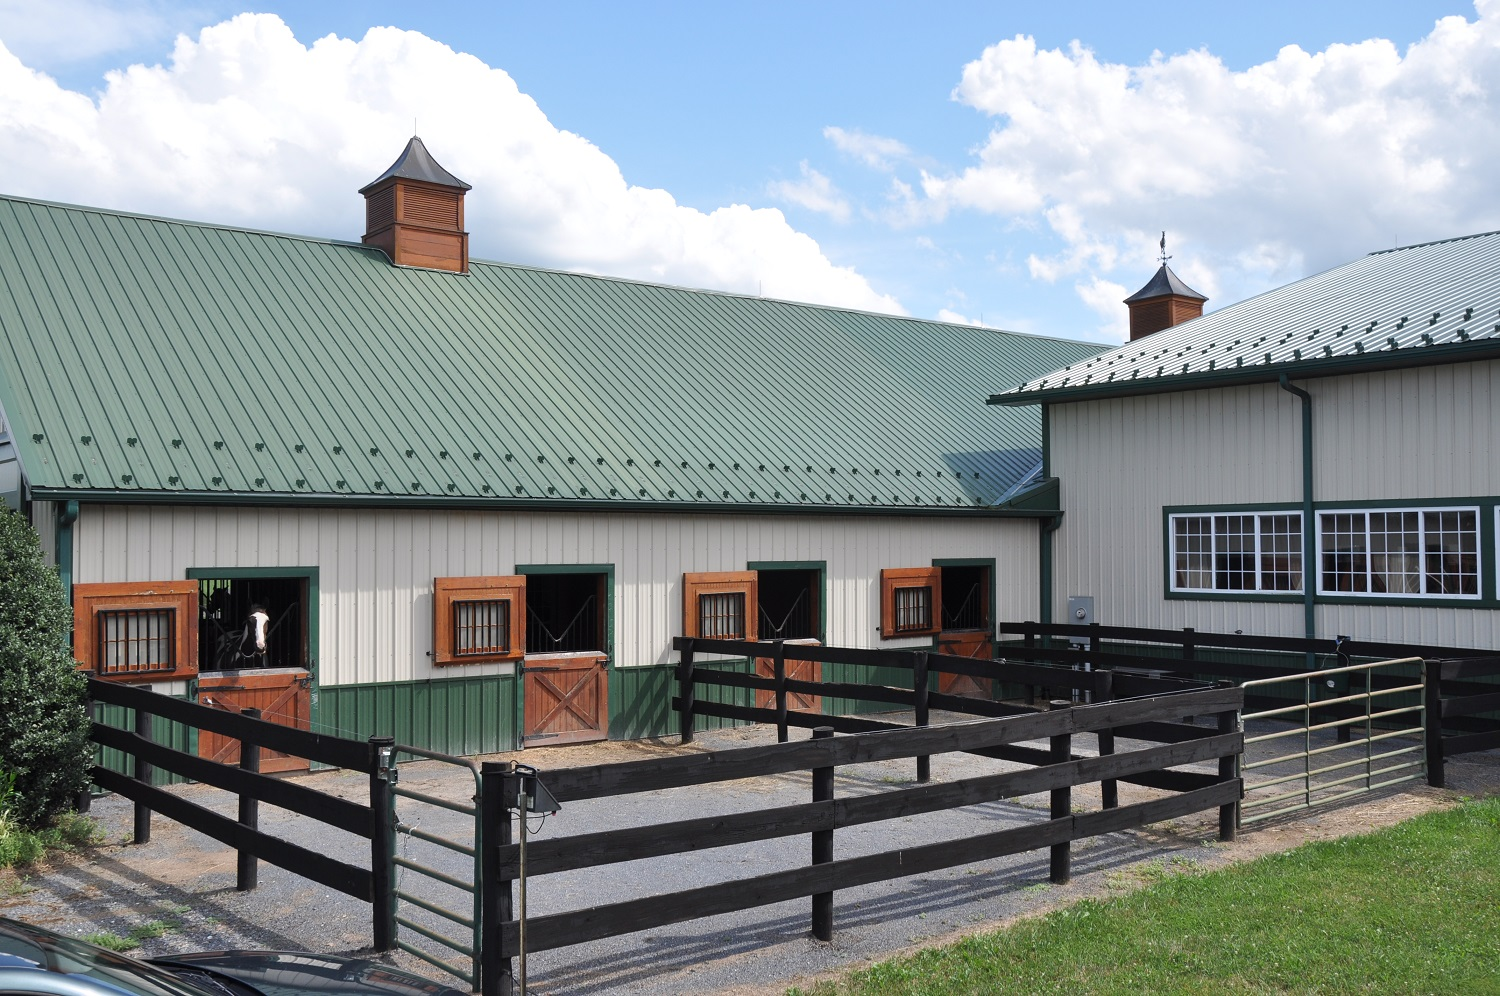 Two of four paddocks off the back of the barn which are AVAILABLE for stalled horses upon request